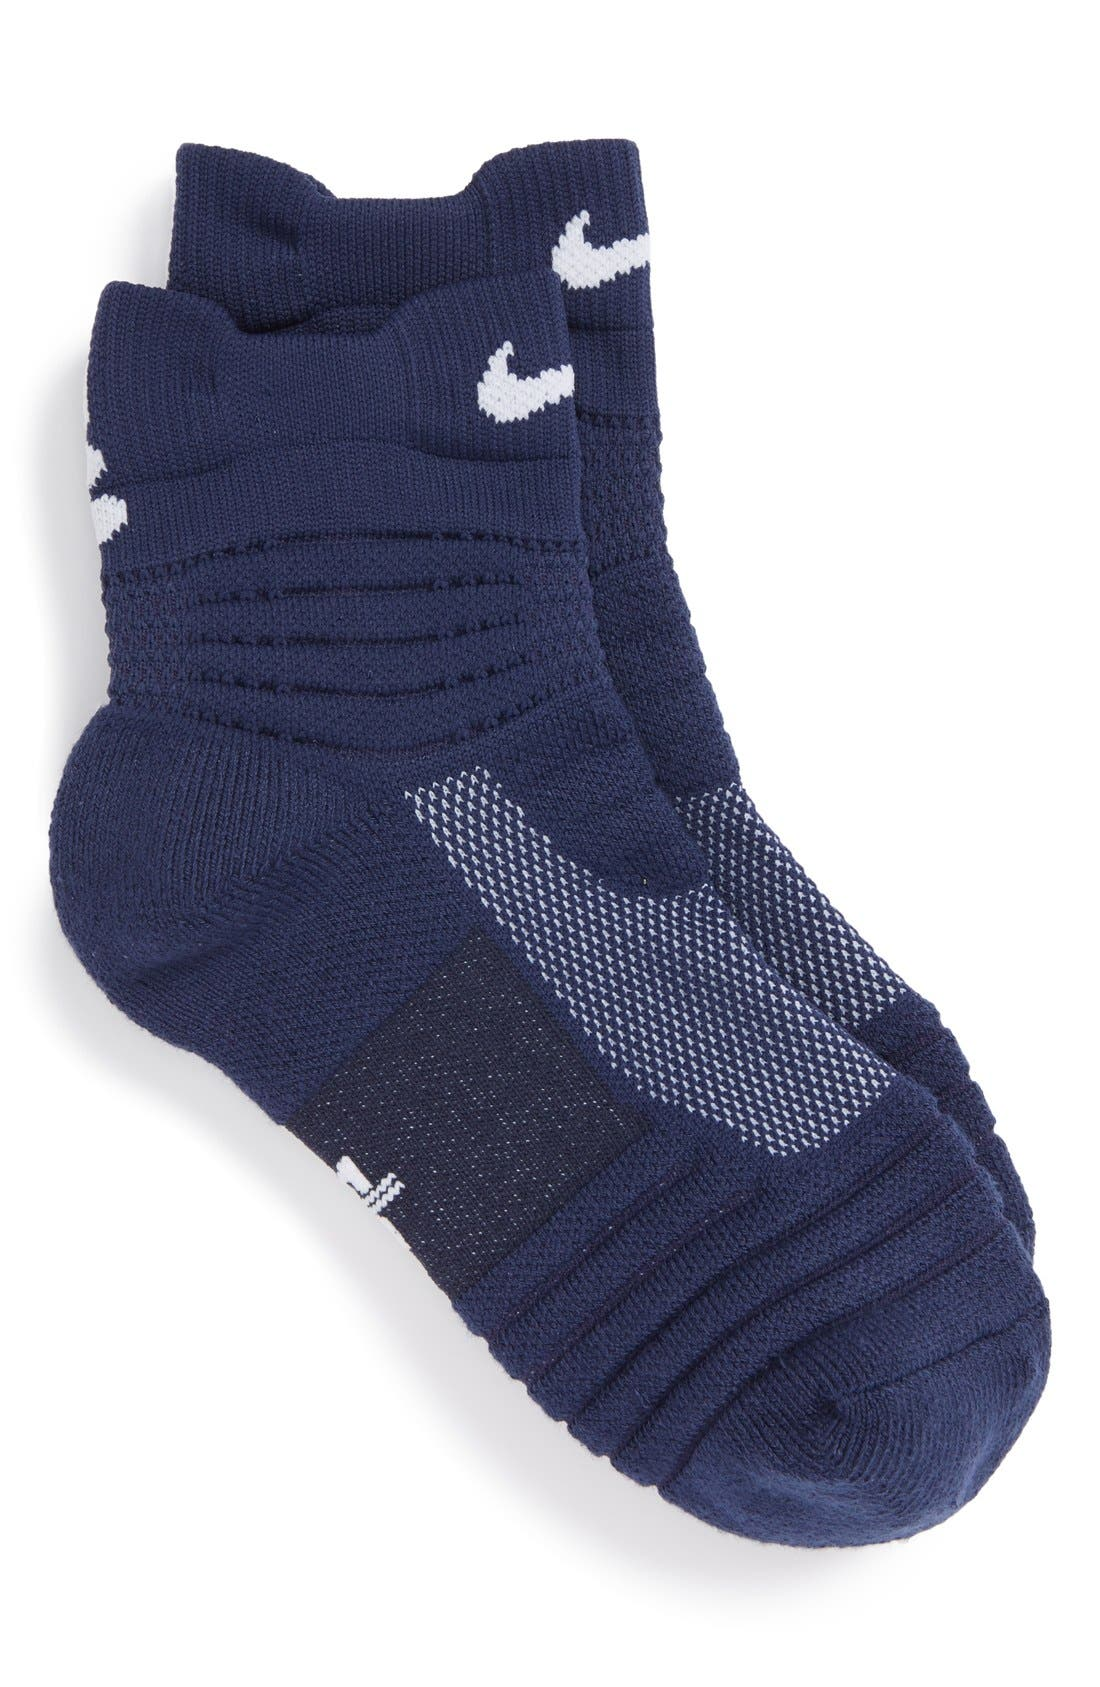 Nike 'Elite Basketball' Dri-FIT Cushioned Quarter Socks (Toddler, Little Kid & Big Kid)